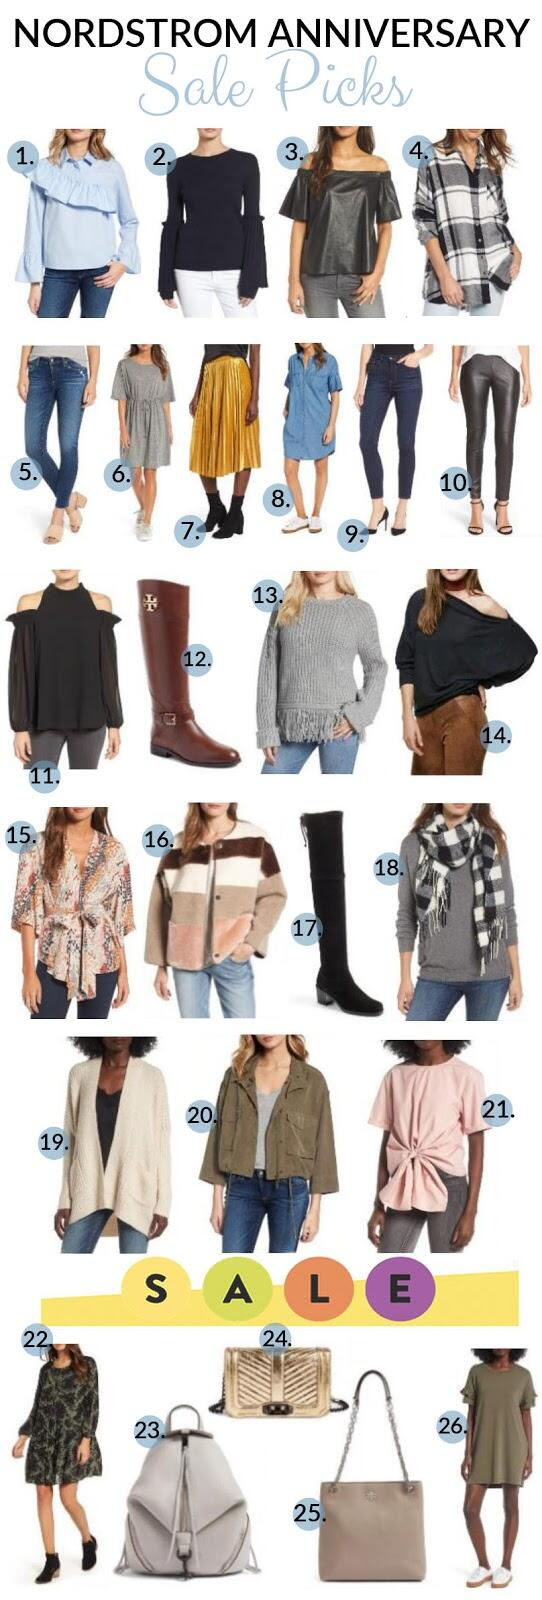 44959fa1d32 Nordstrom Anniversary Sale Early Access Shopping Guide by fashion blogger  Laura of Walking in Memphis in